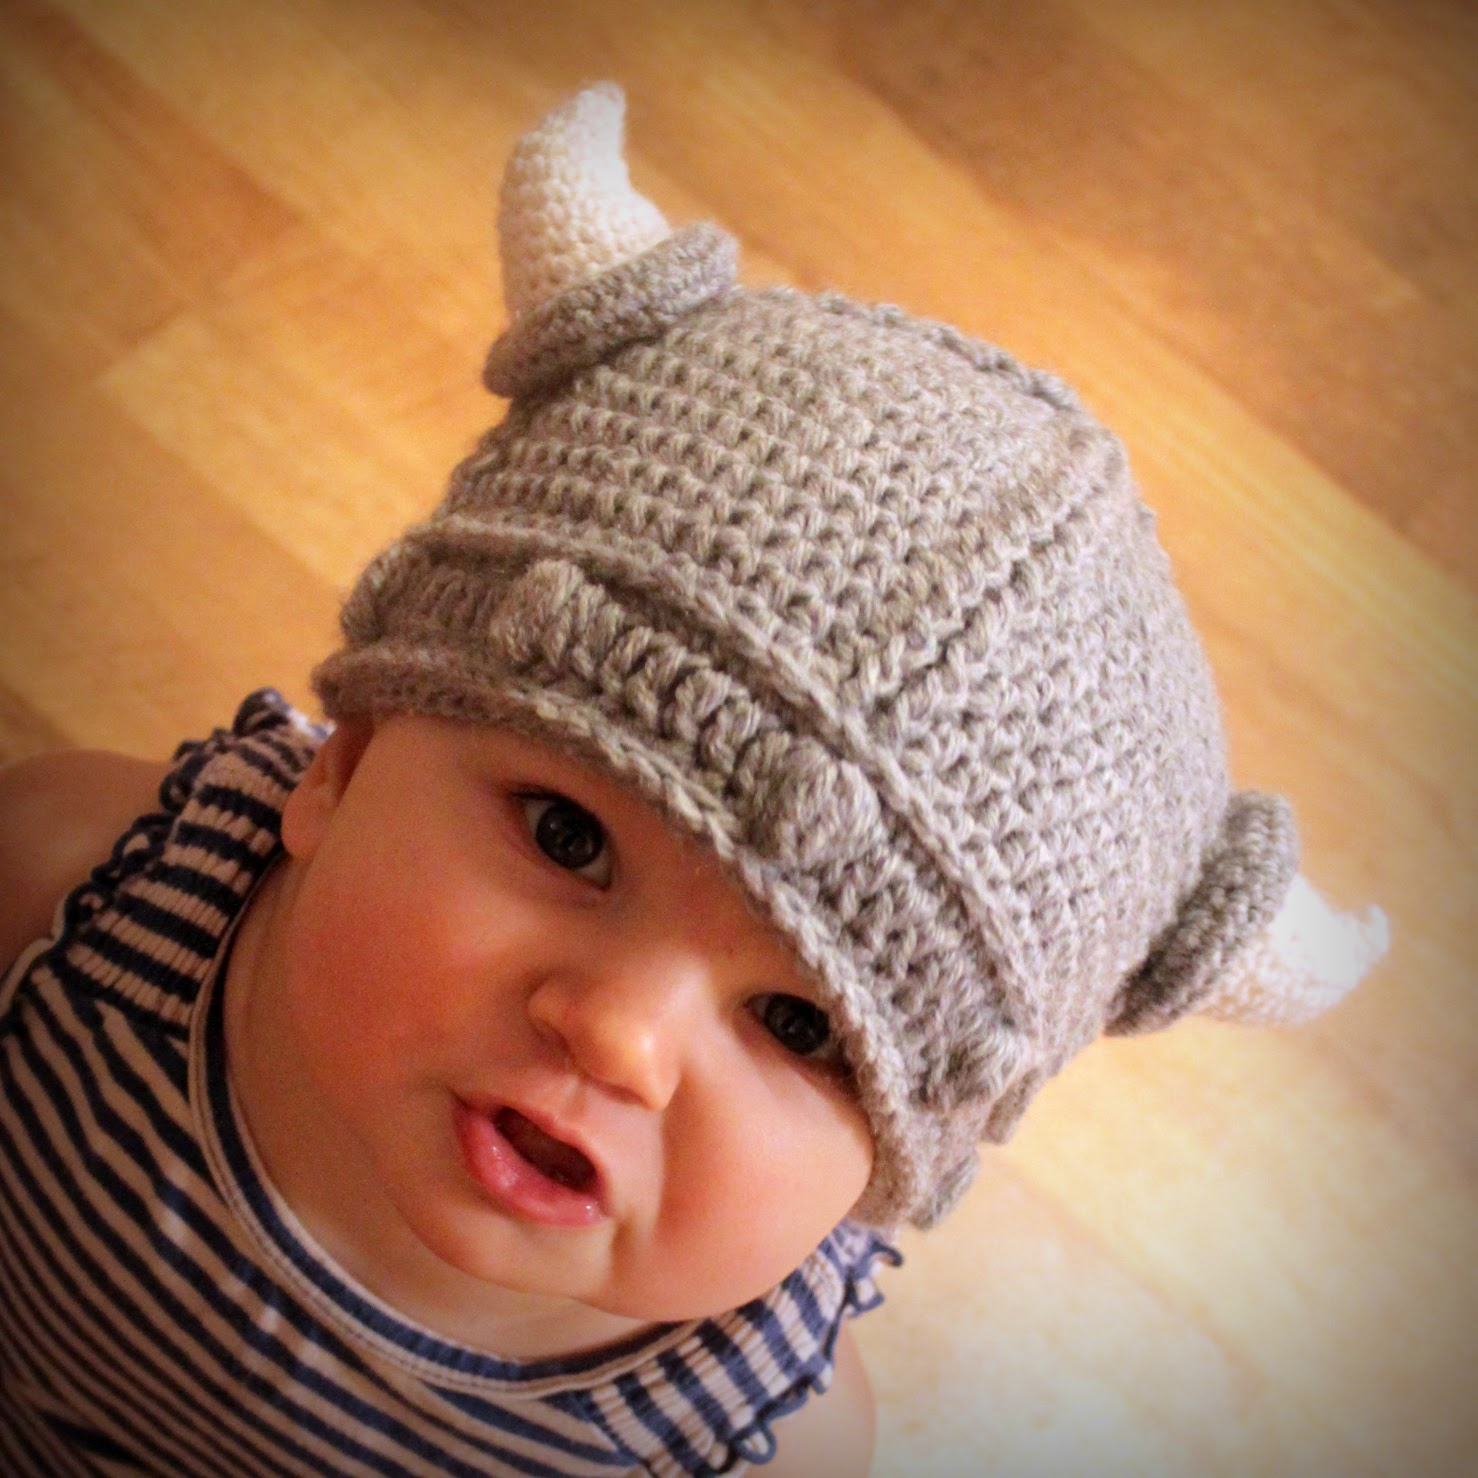 Free Crochet Patterns For Viking Hat : Crochet For Free: Lael Viking Hat (Size Newborn - Adult)